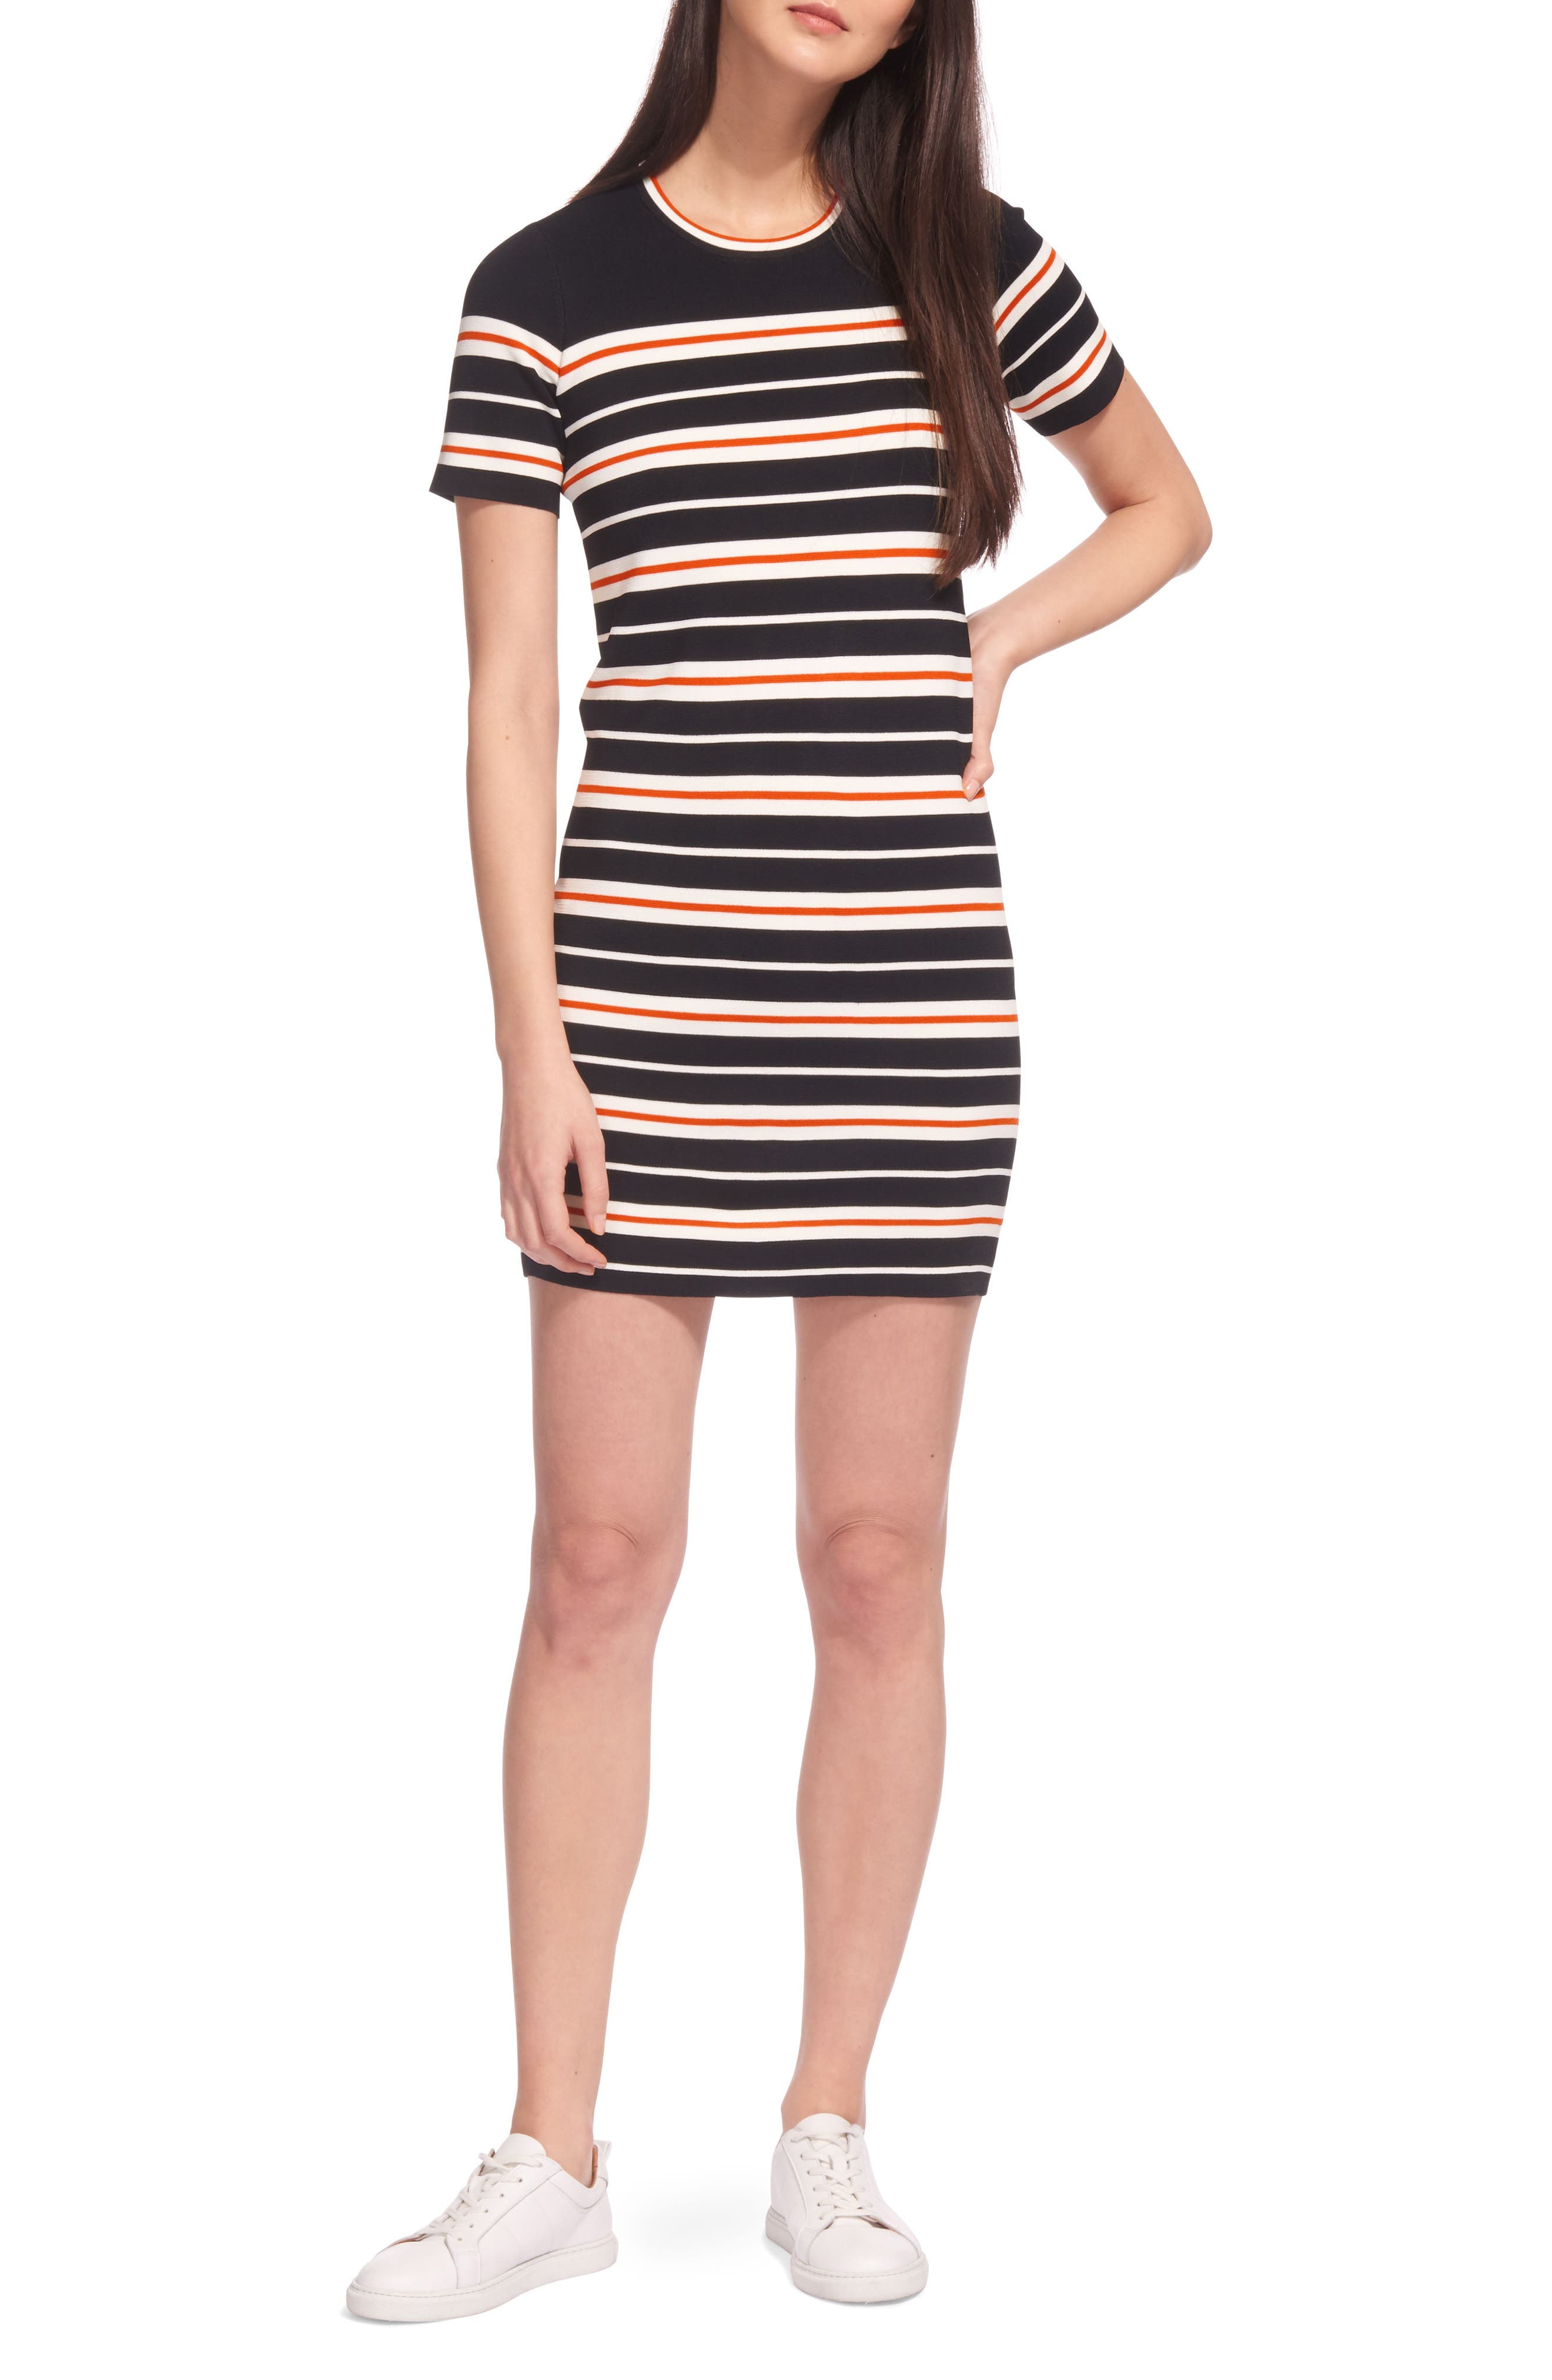 Milano Stripe Knit Dress,                         Main,                         color, 001